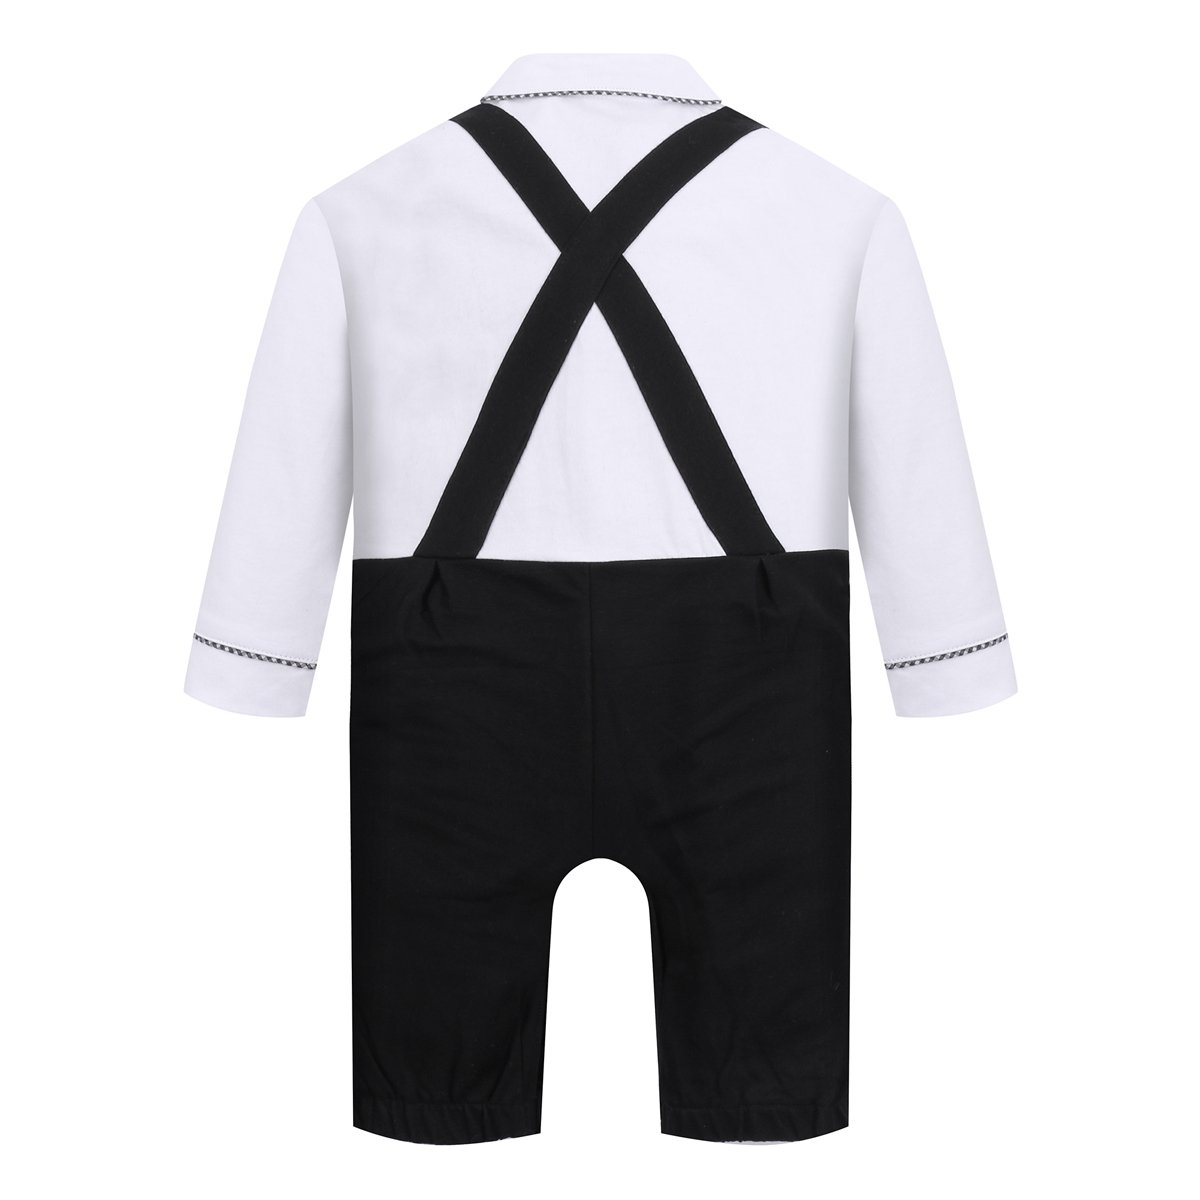 Baby Boy Outfits,Clothing Set Toddler Jumpsuit Romper Onesie with Bowtie /& Strap